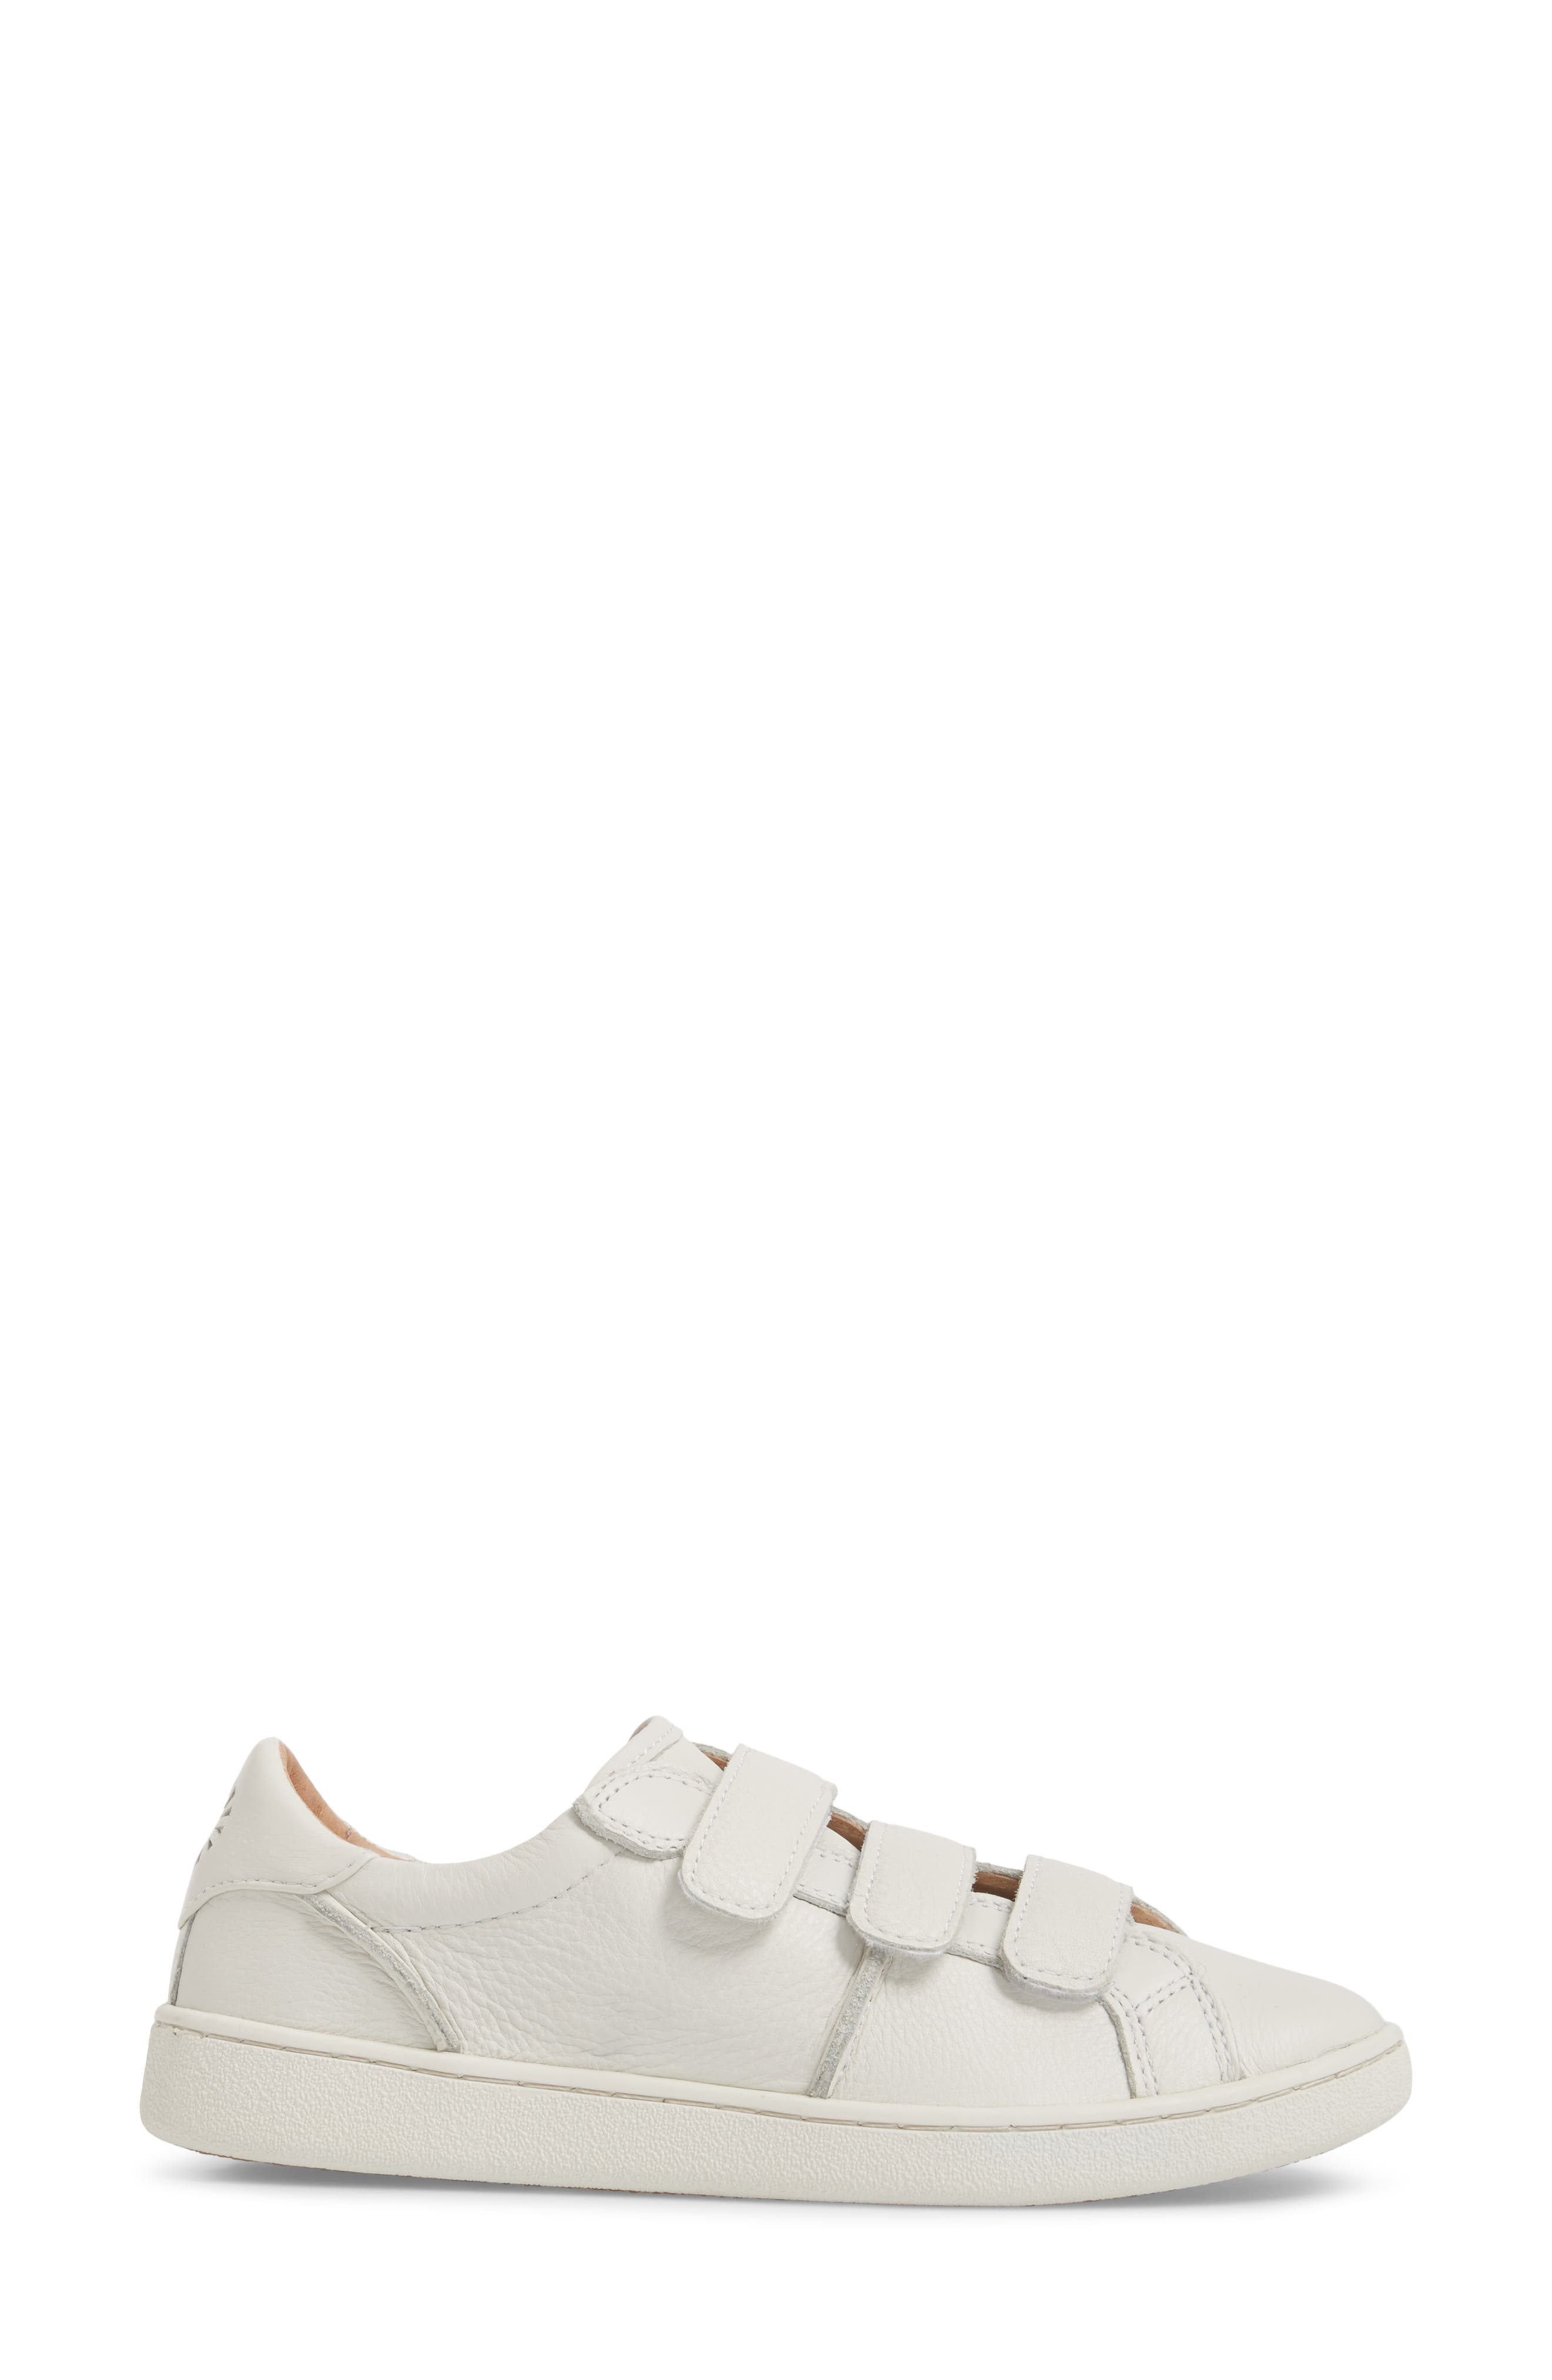 Alix Sneaker,                             Alternate thumbnail 3, color,                             White Leather